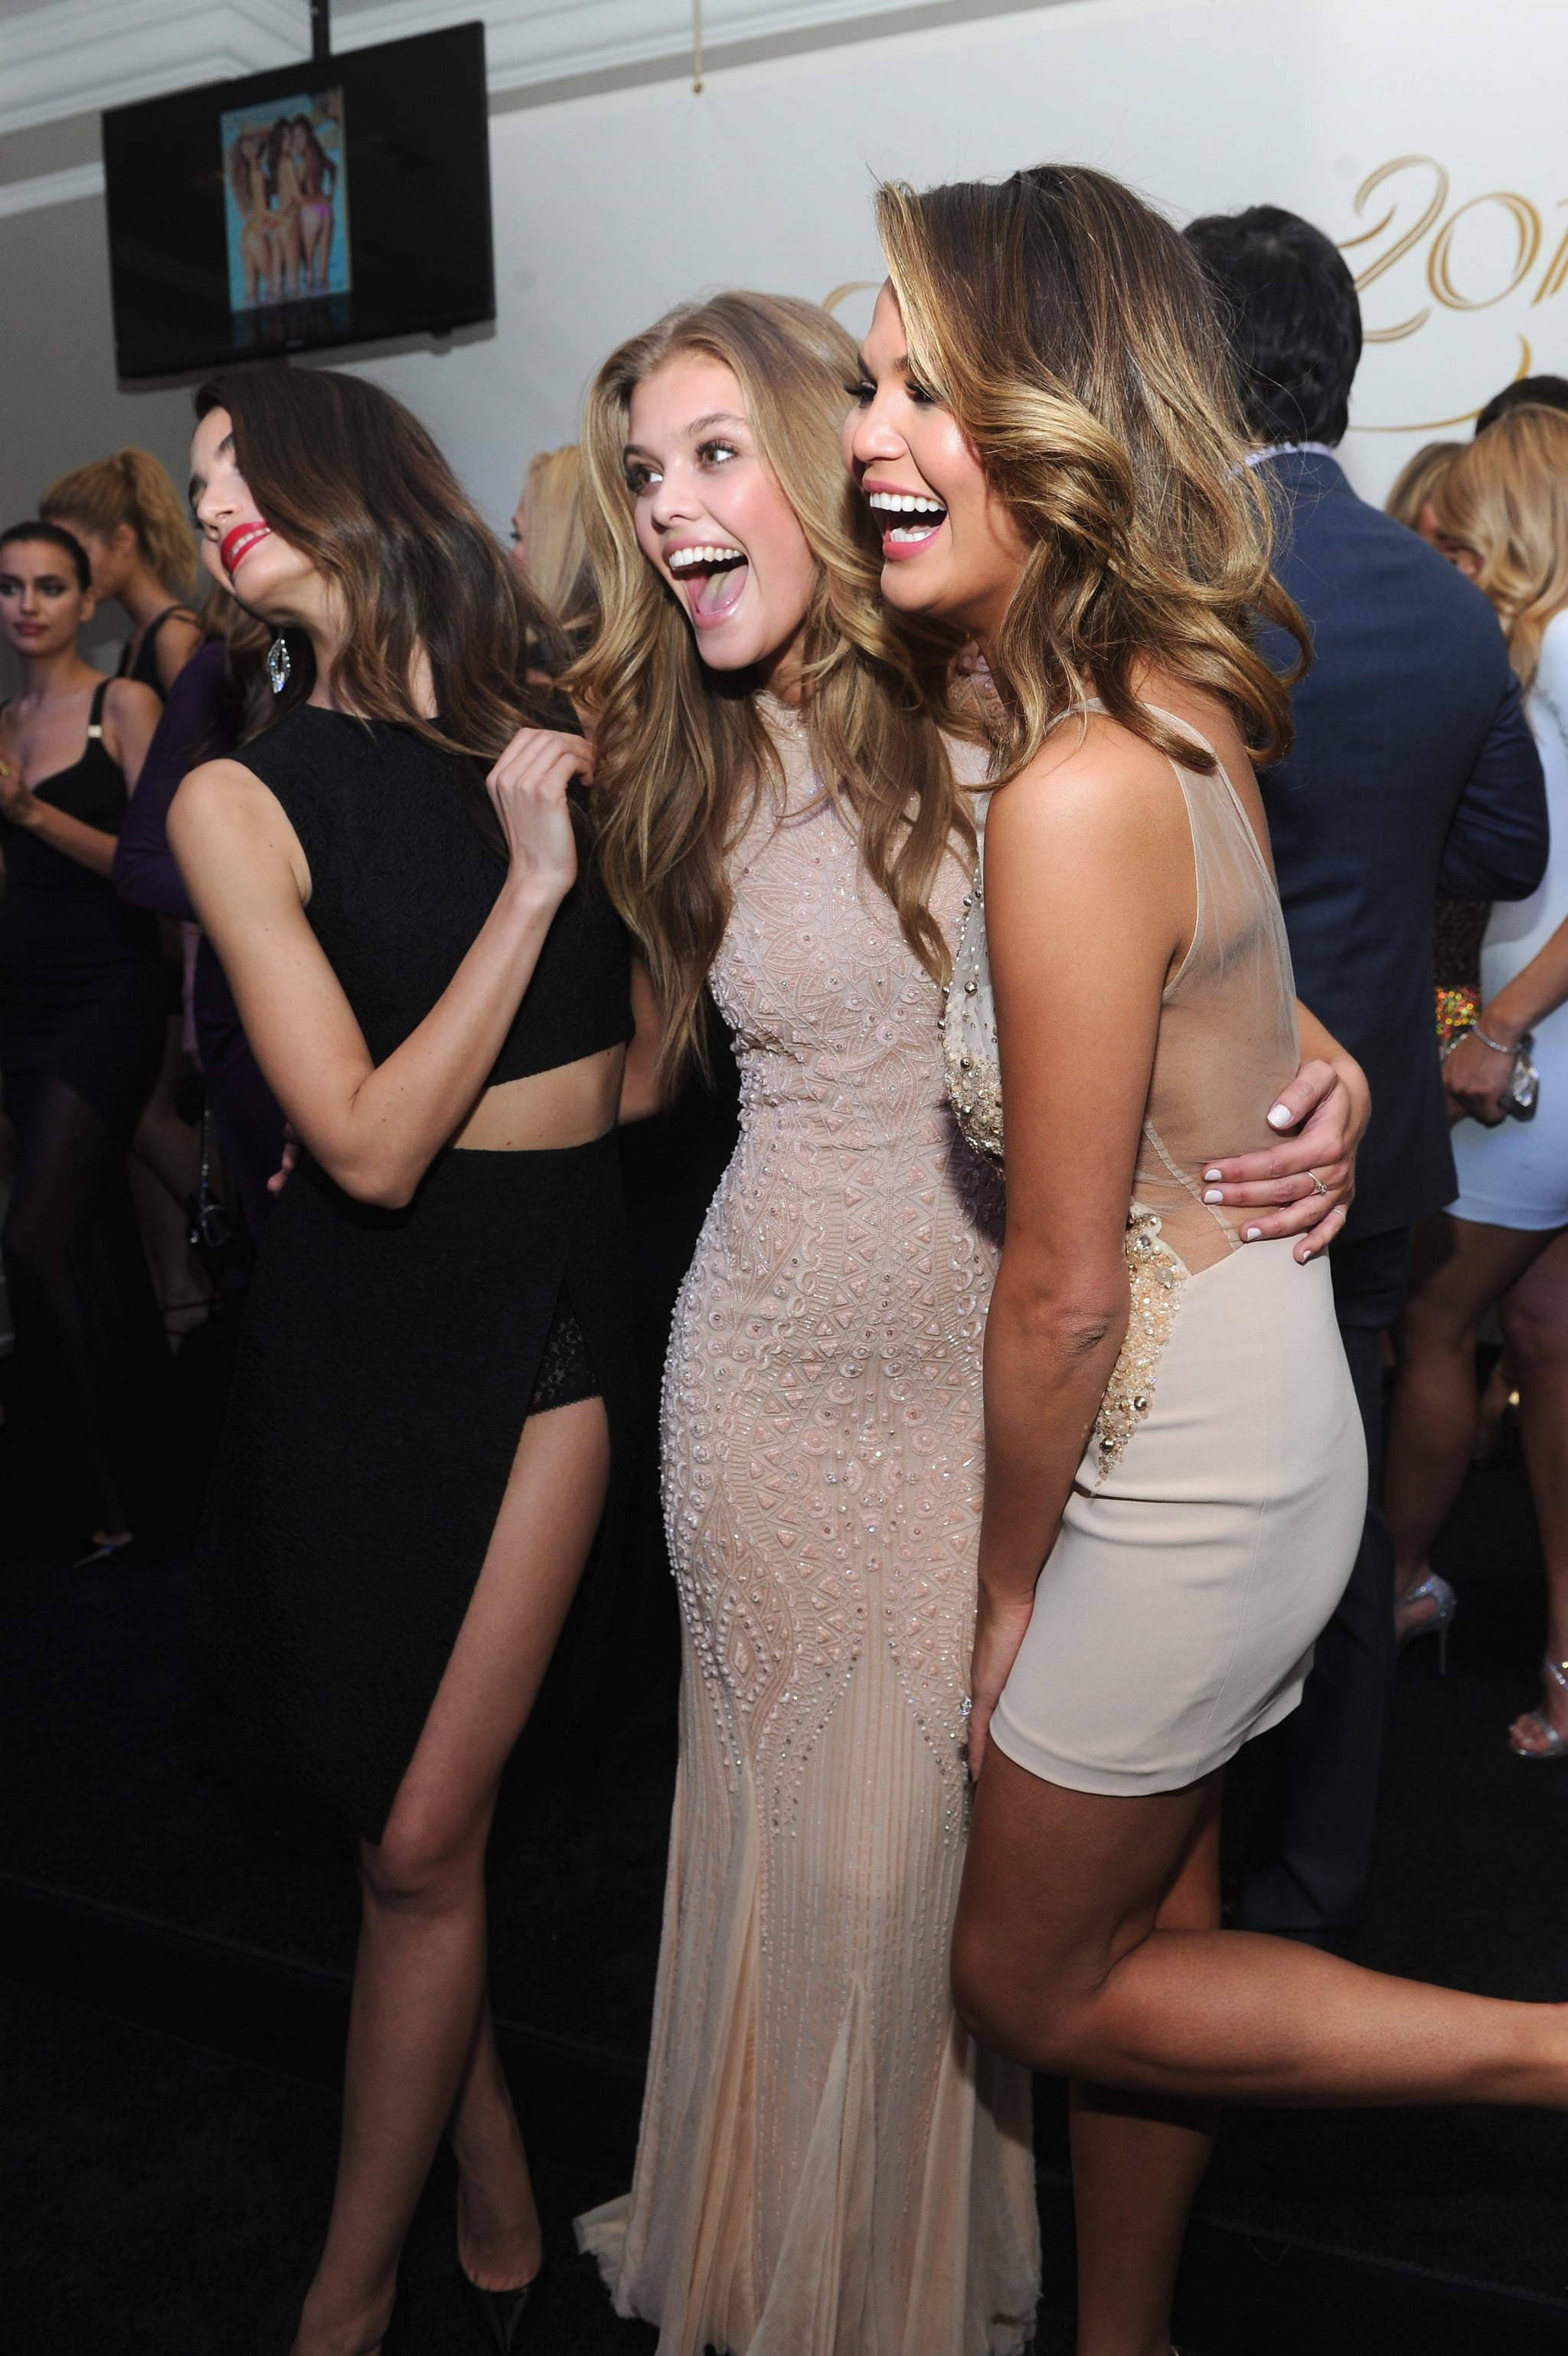 Chrissy, Nina, and Lily couldn't stop laughing.